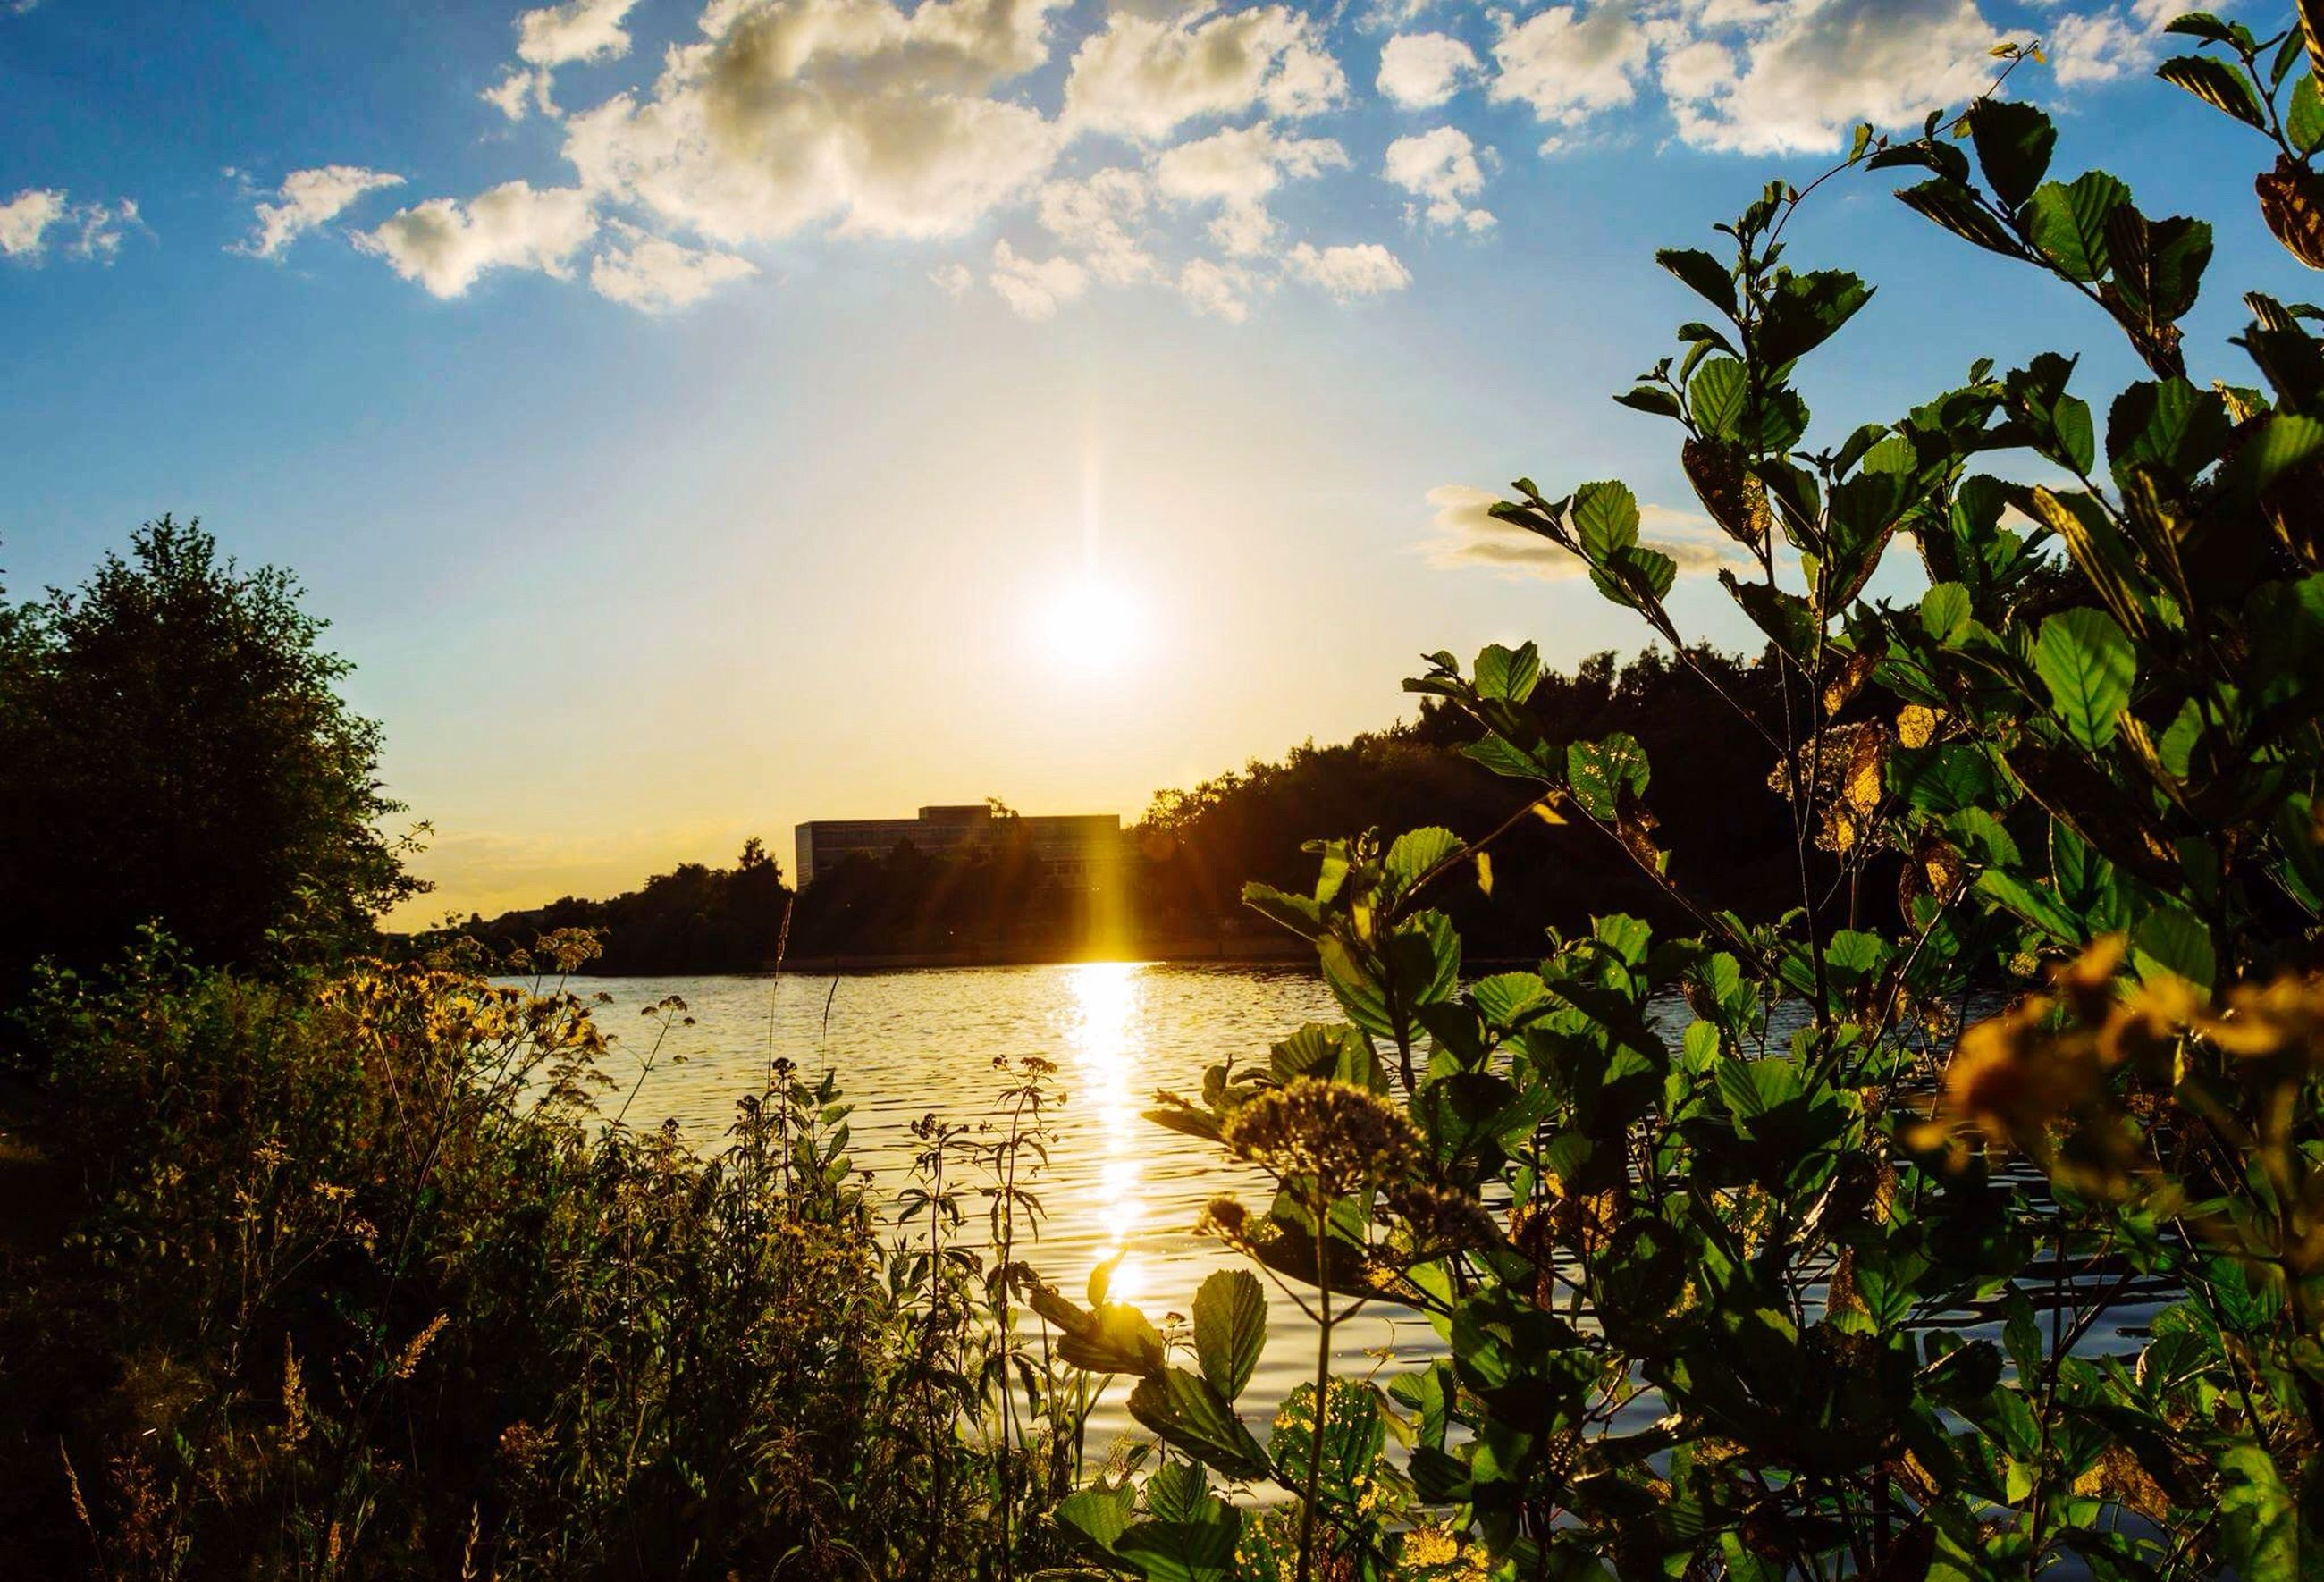 nature, sunset, water, tree, plant, sky, landscape, beauty in nature, sun, outdoors, no people, day